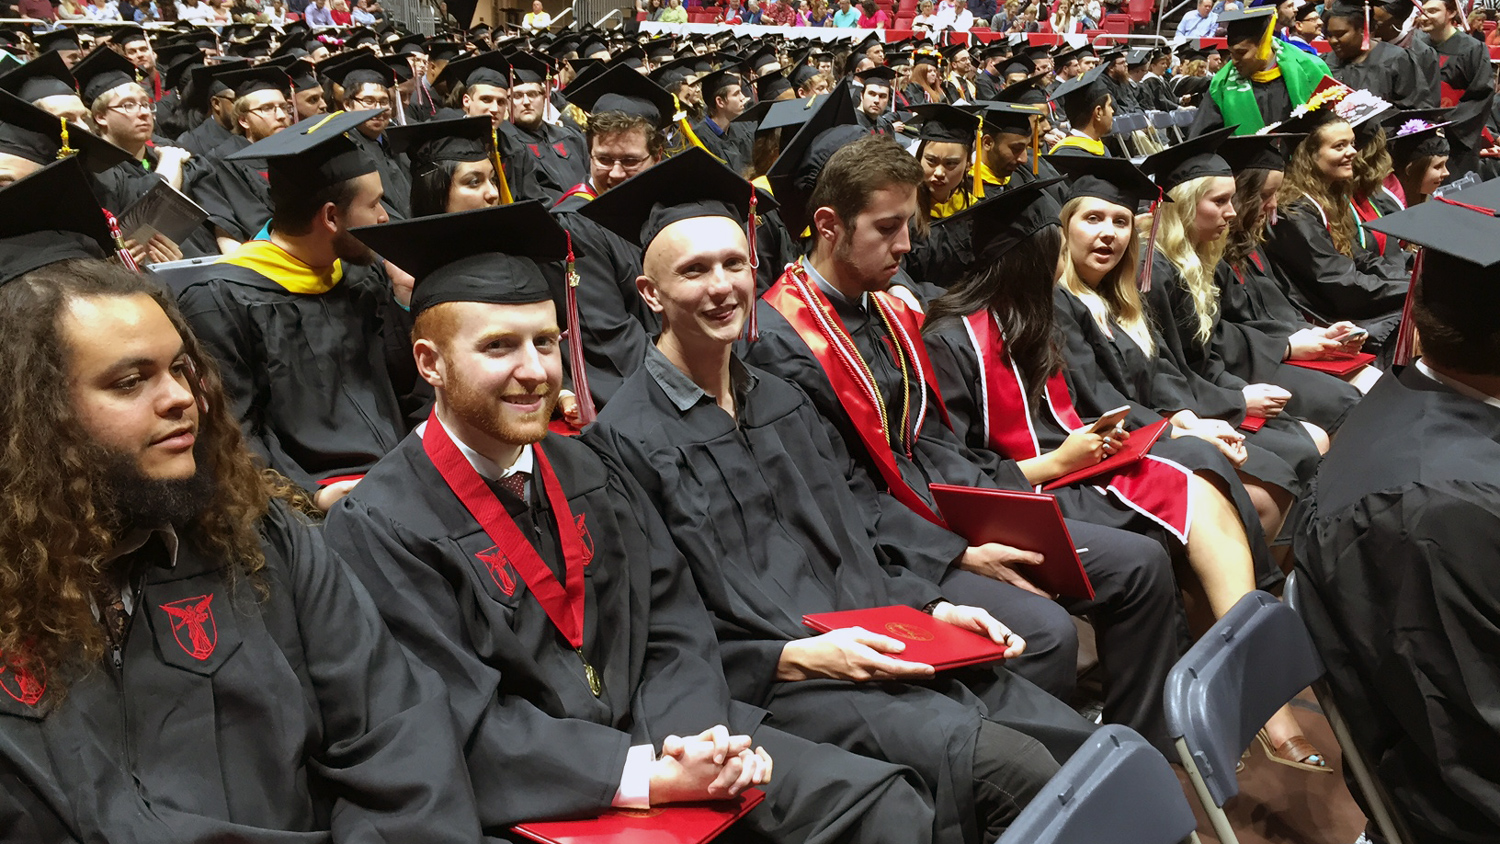 students at commencement ceremonies, wearing academic regalia